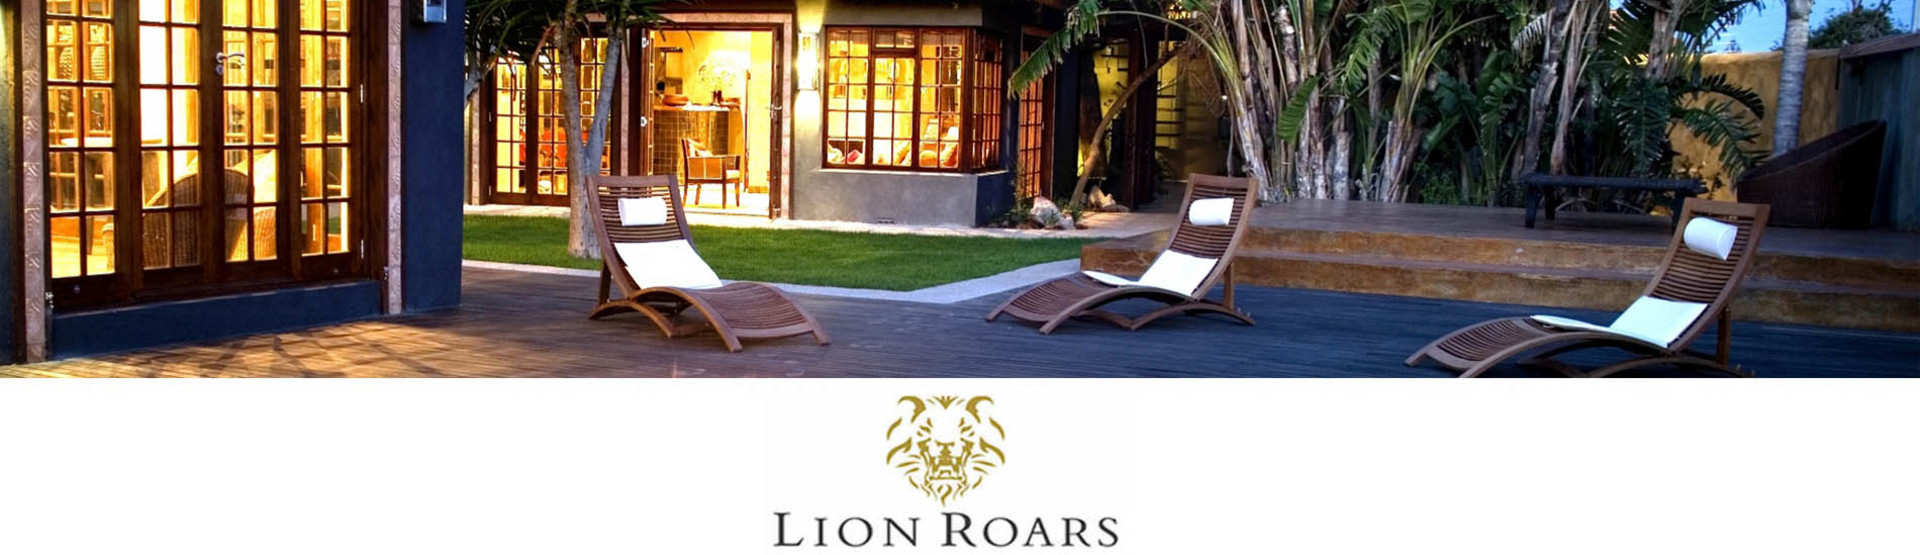 Singa Lodge Port Elizabeth Lion Roars Story So Far